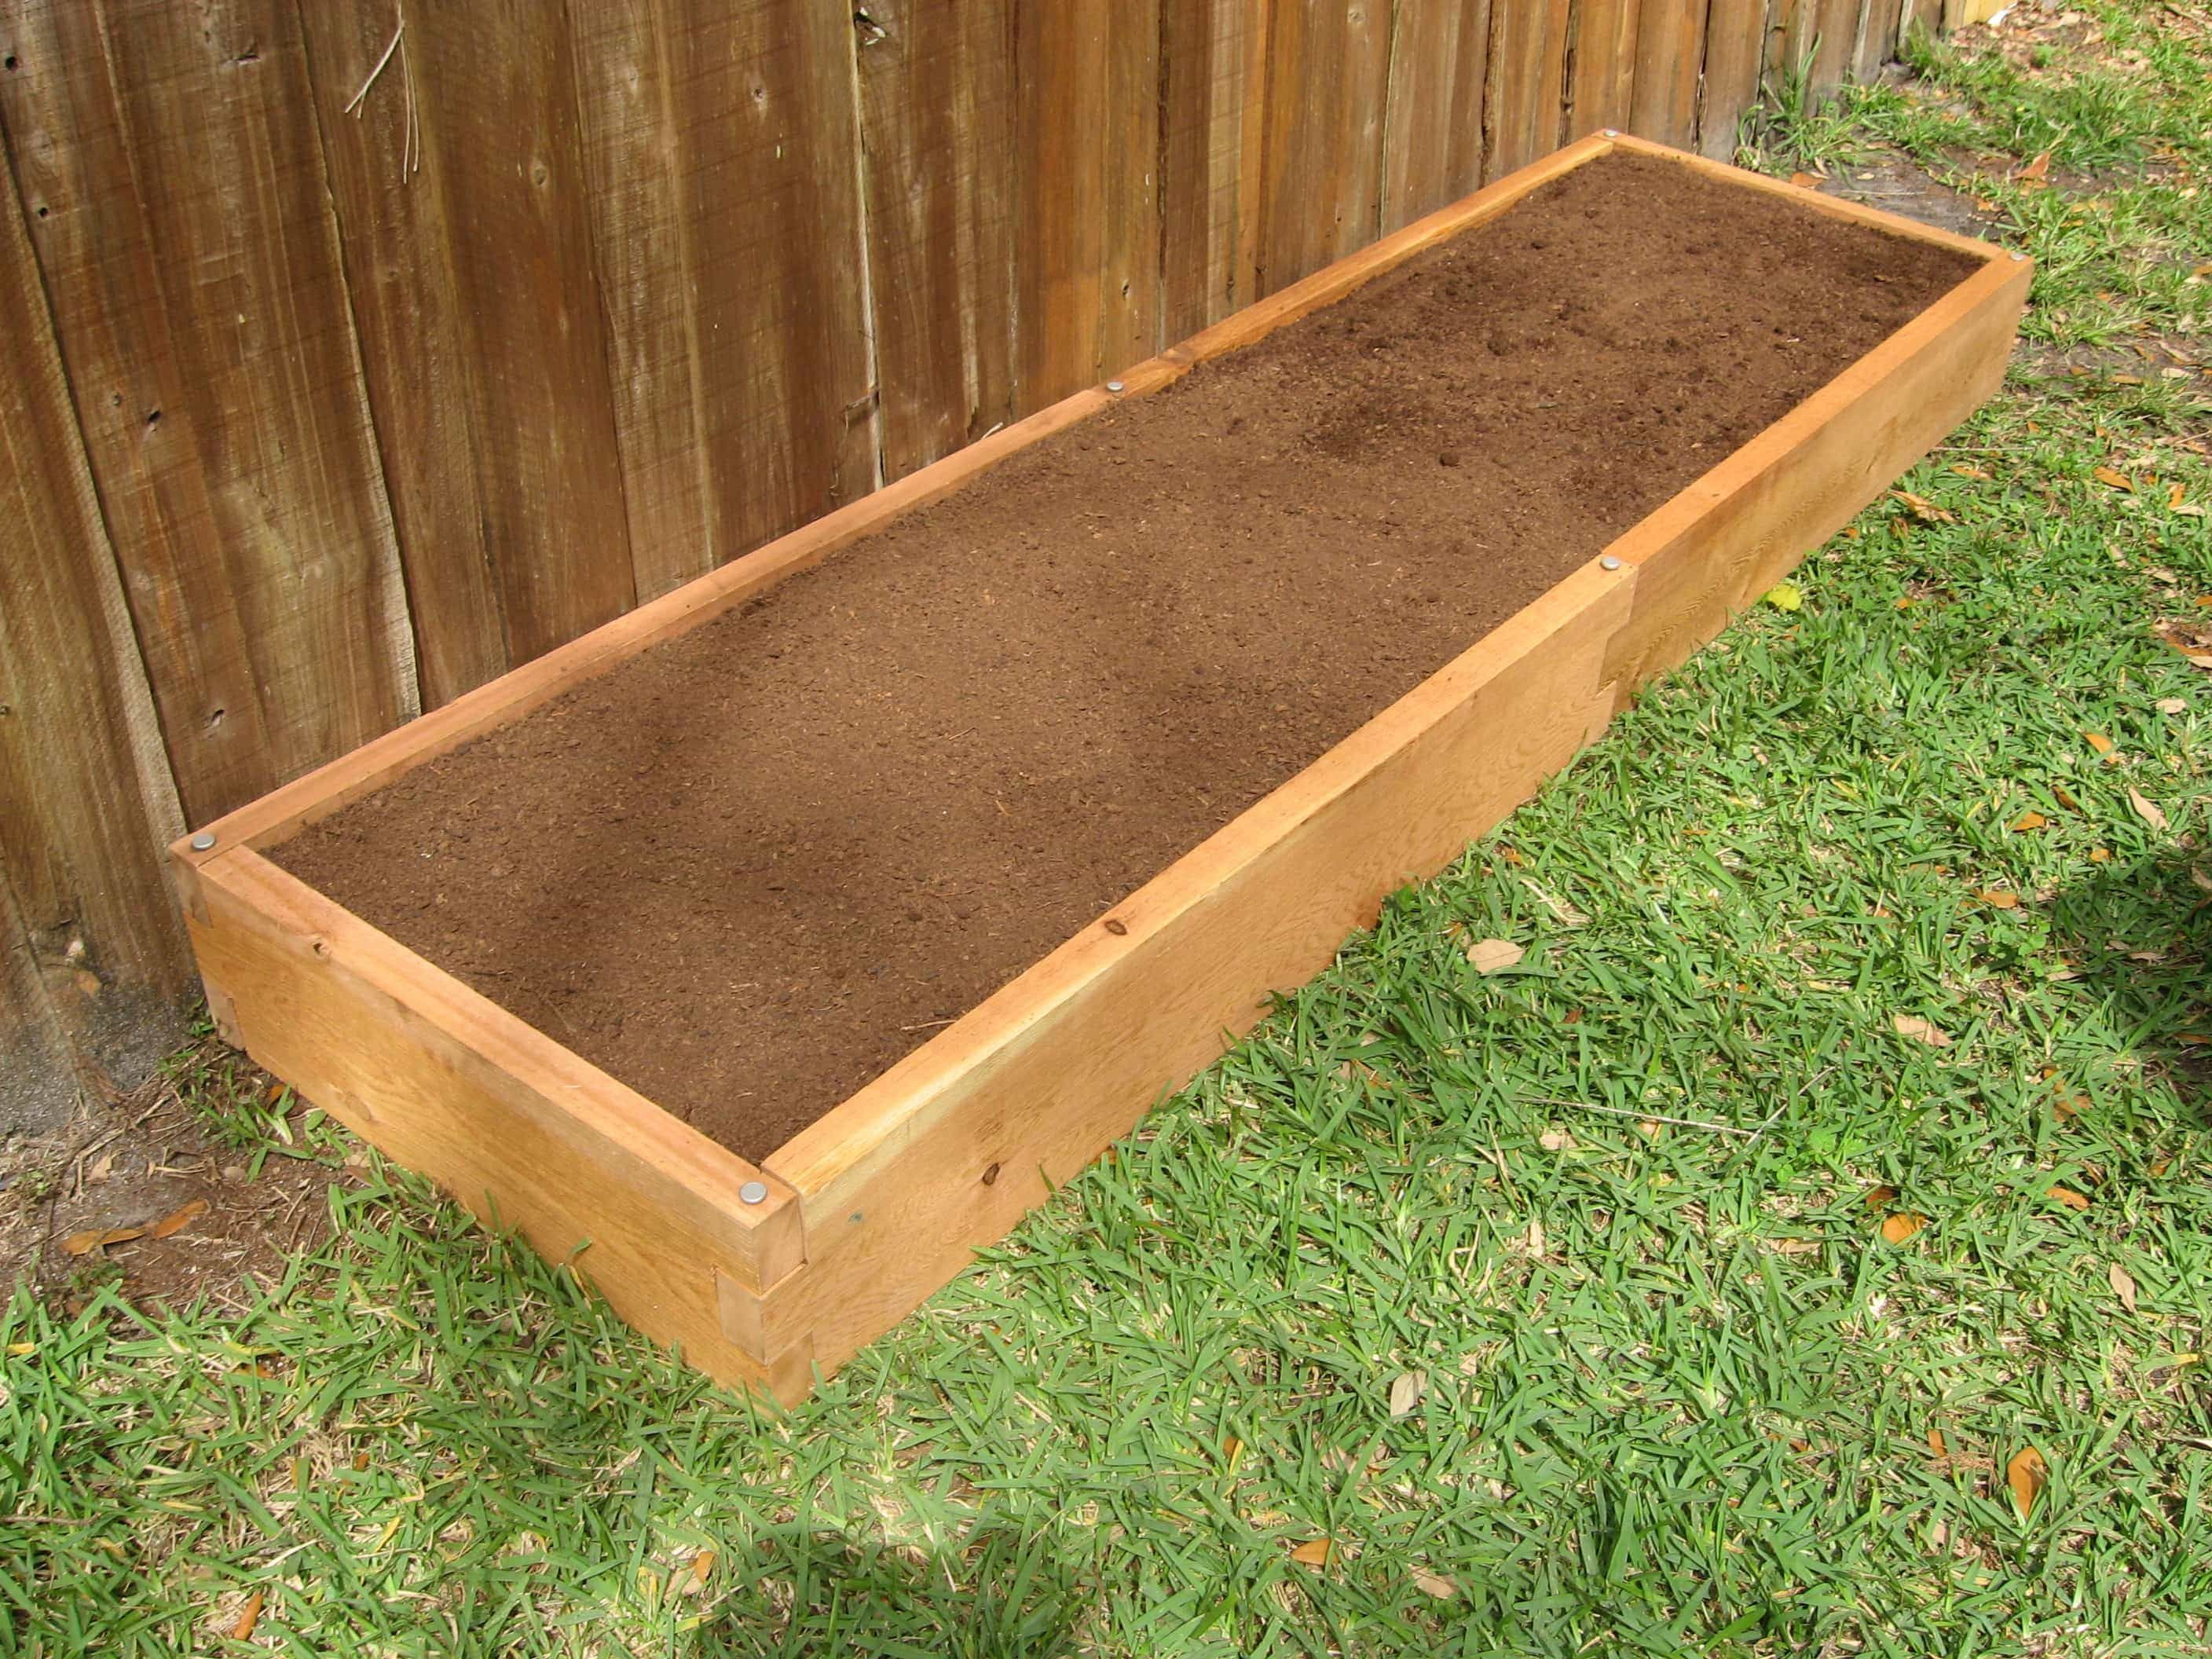 65+ DIY Elevated Garden Beds You Can Build in a Day | Elevated ...